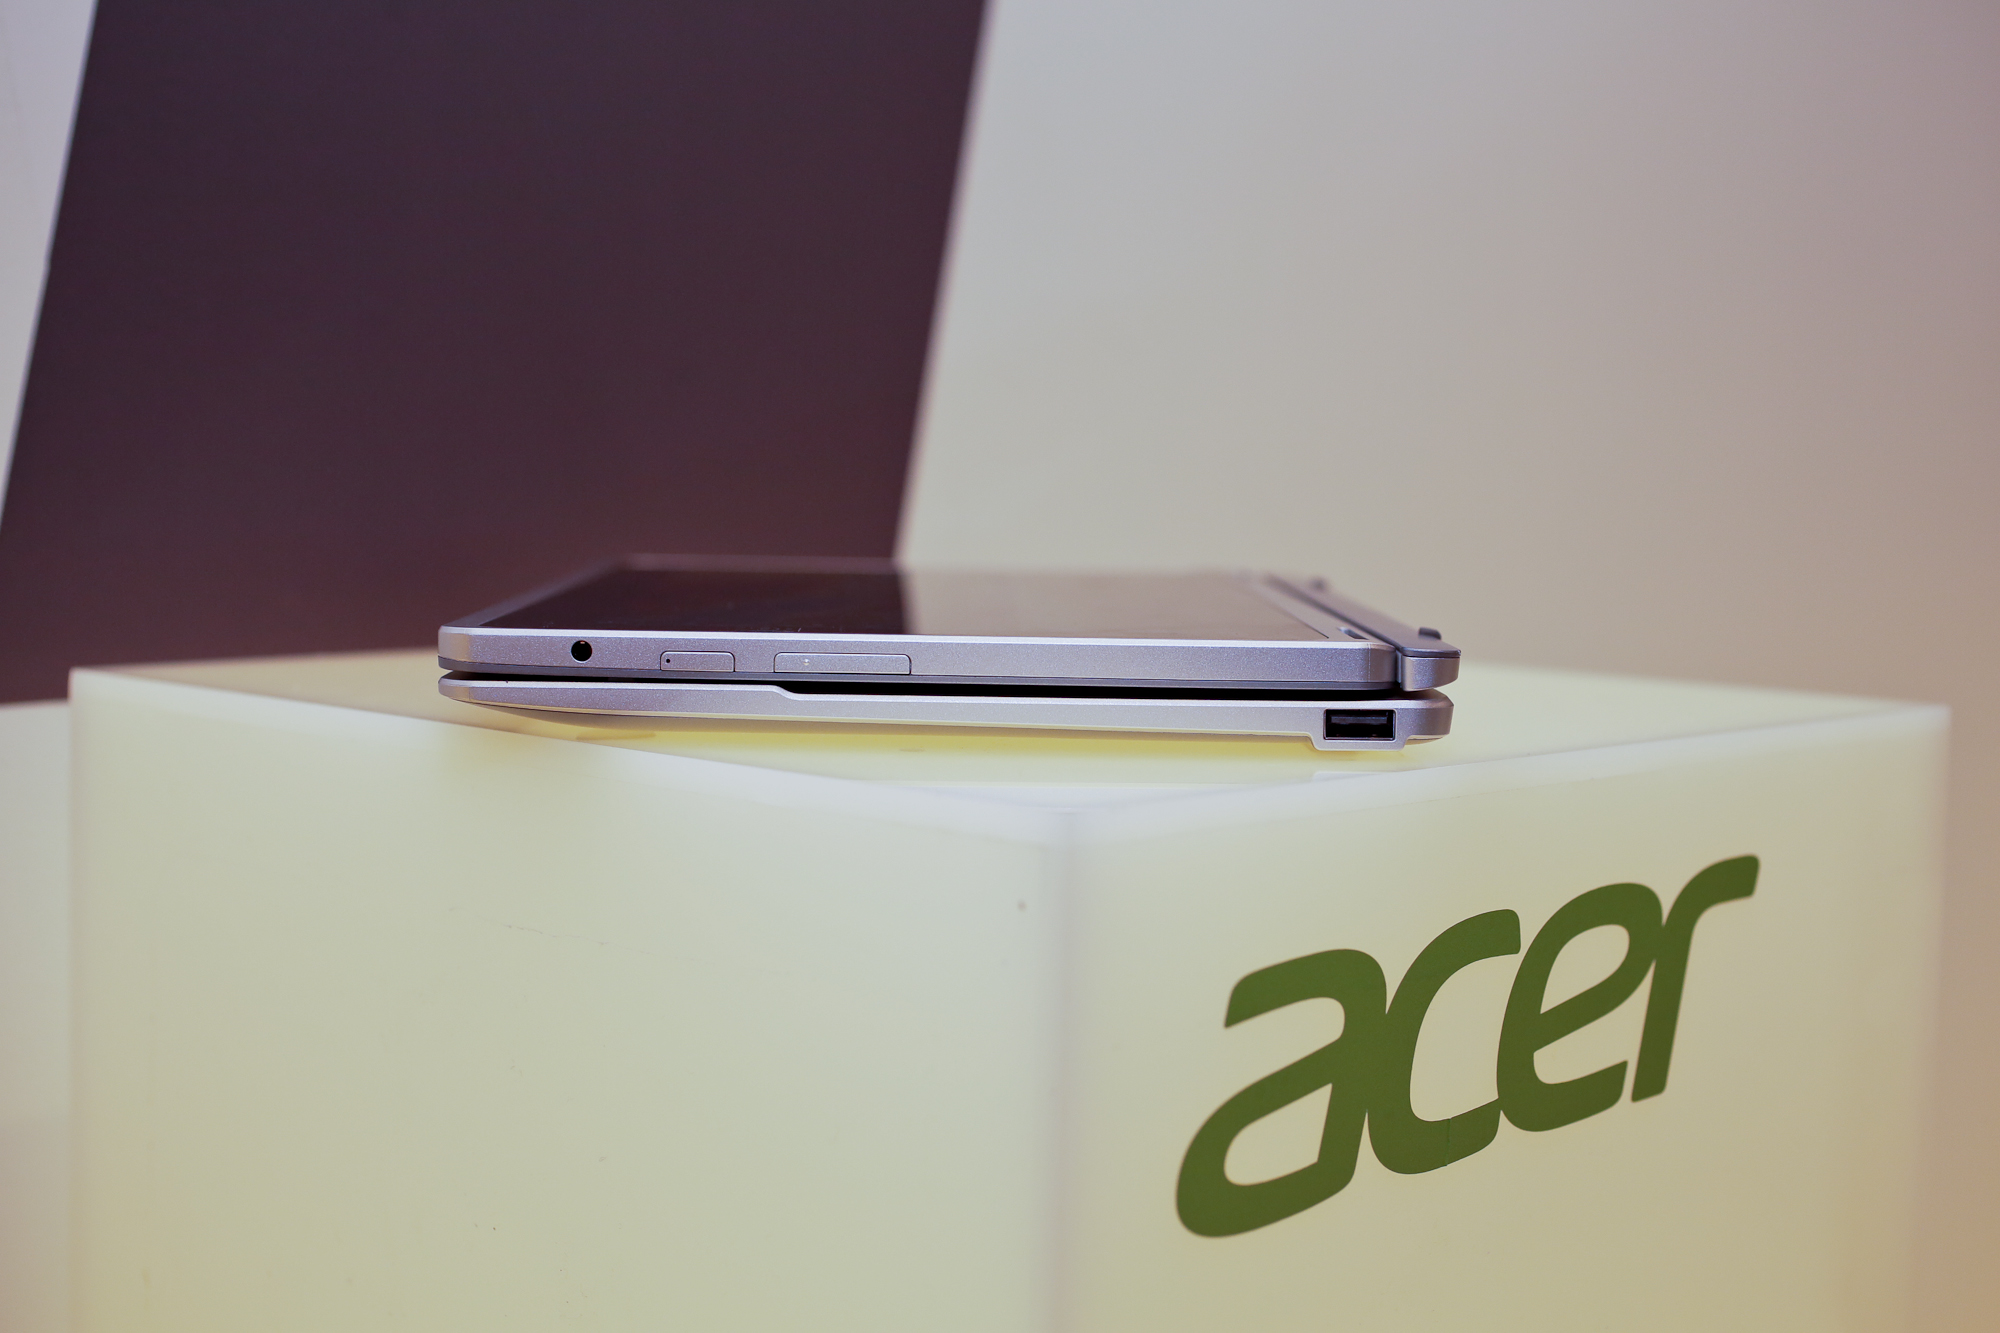 003acer-aspire-switch-10-product-photos.jpg